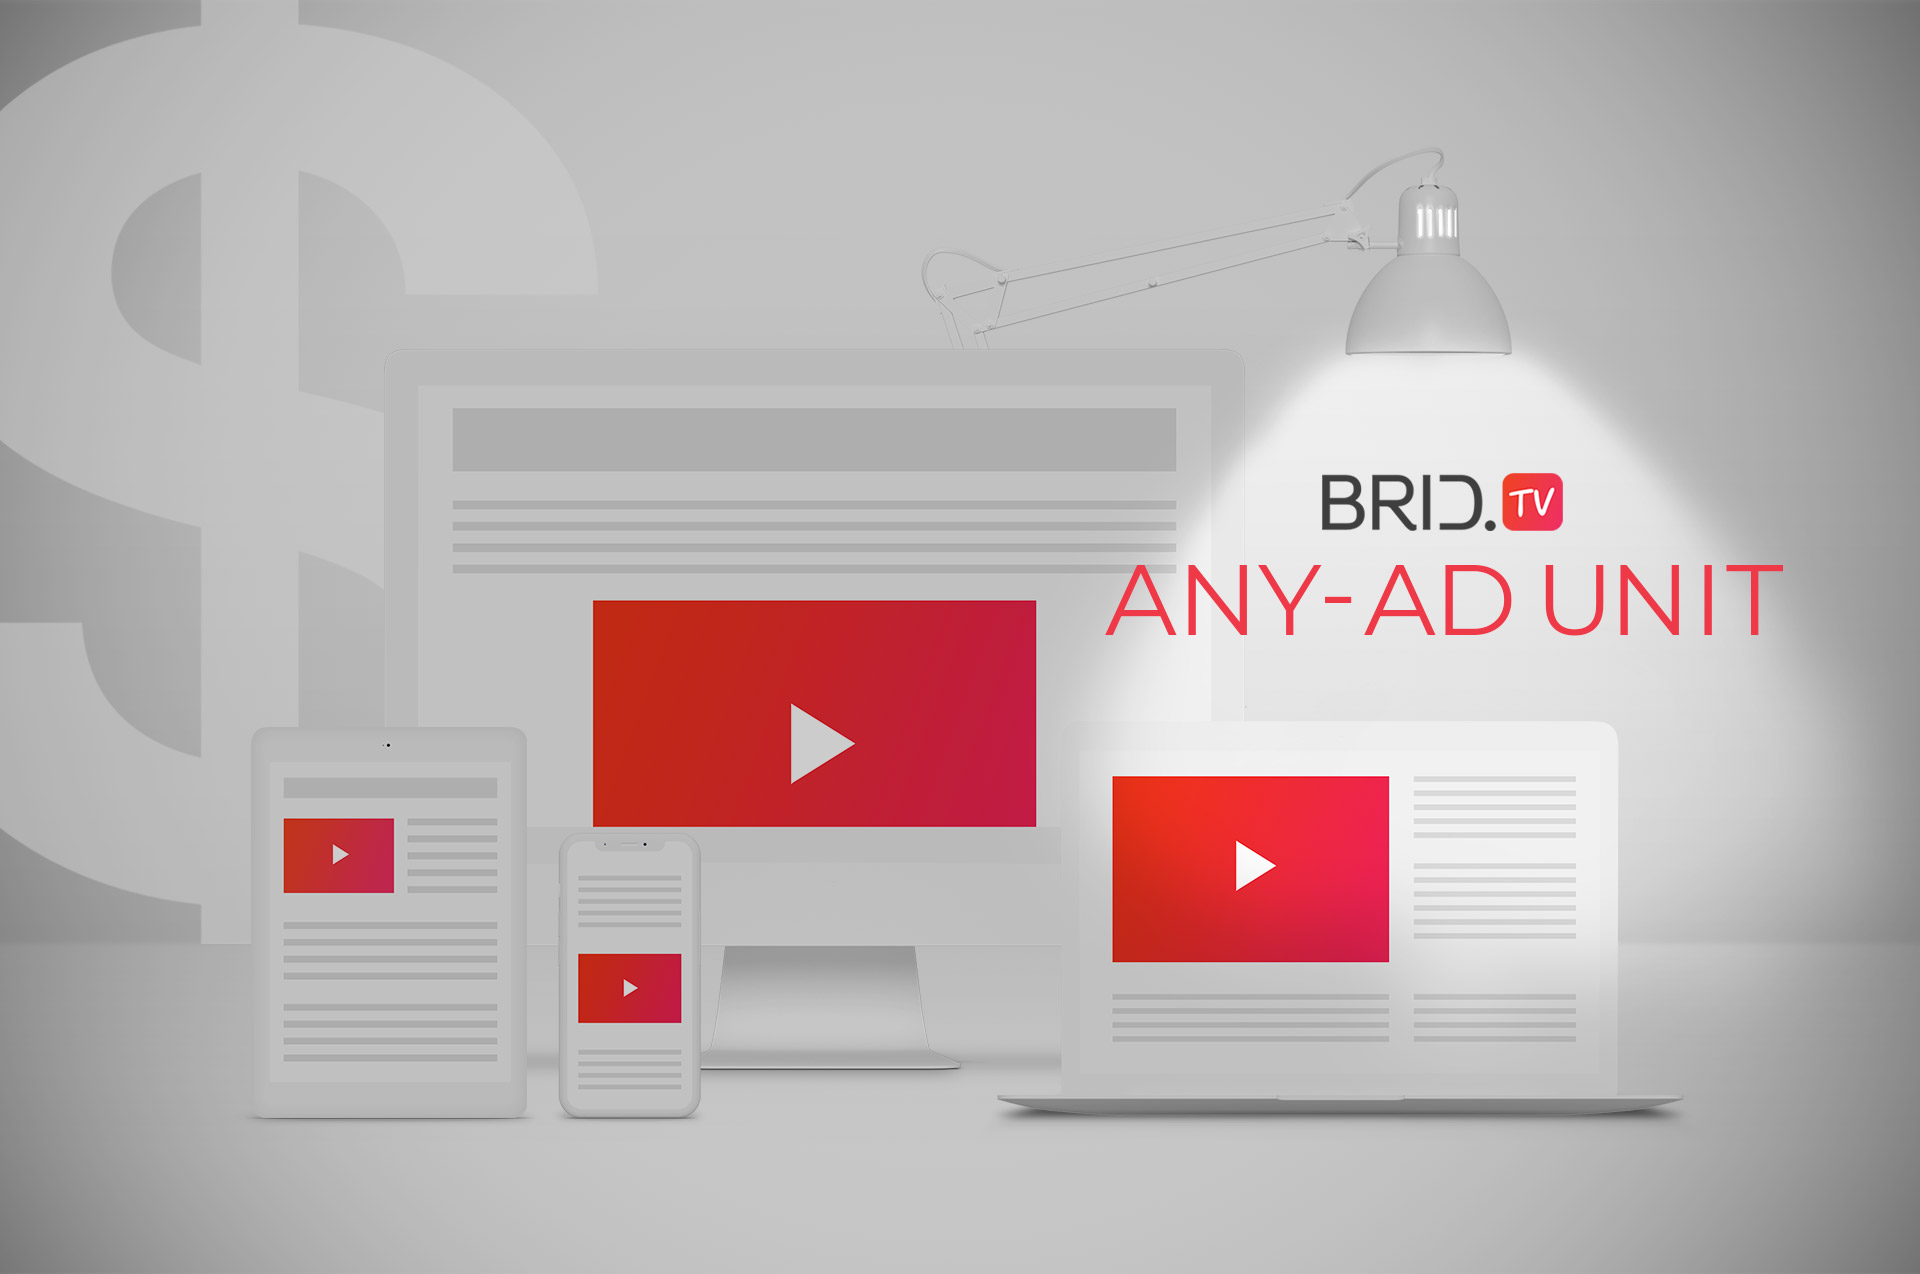 Bridtv outstream ad unit